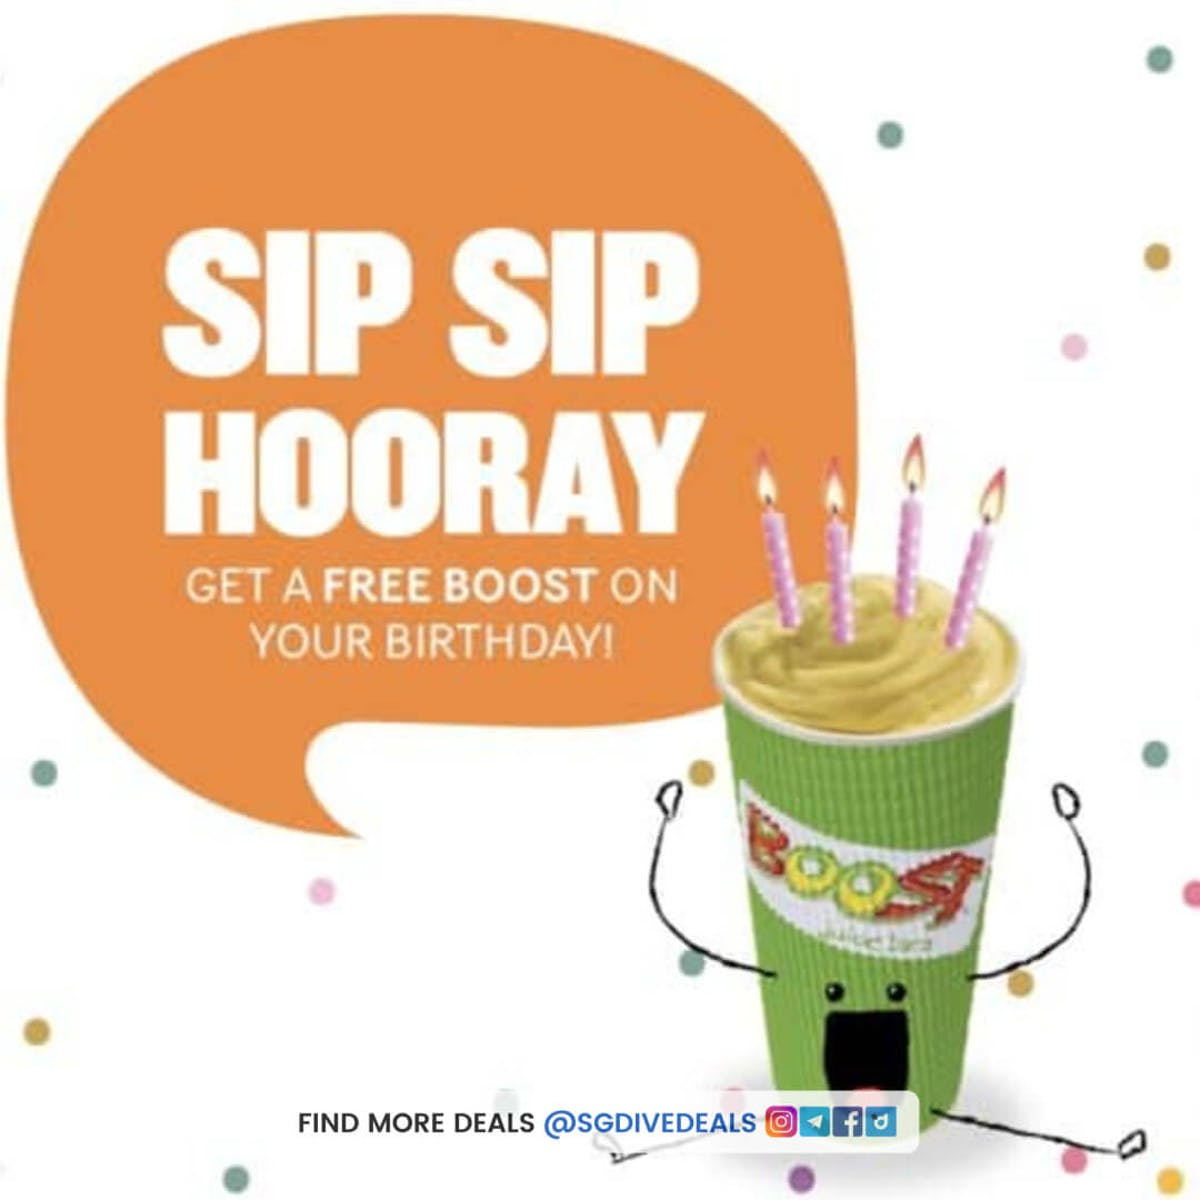 Free boost drink on your birthday